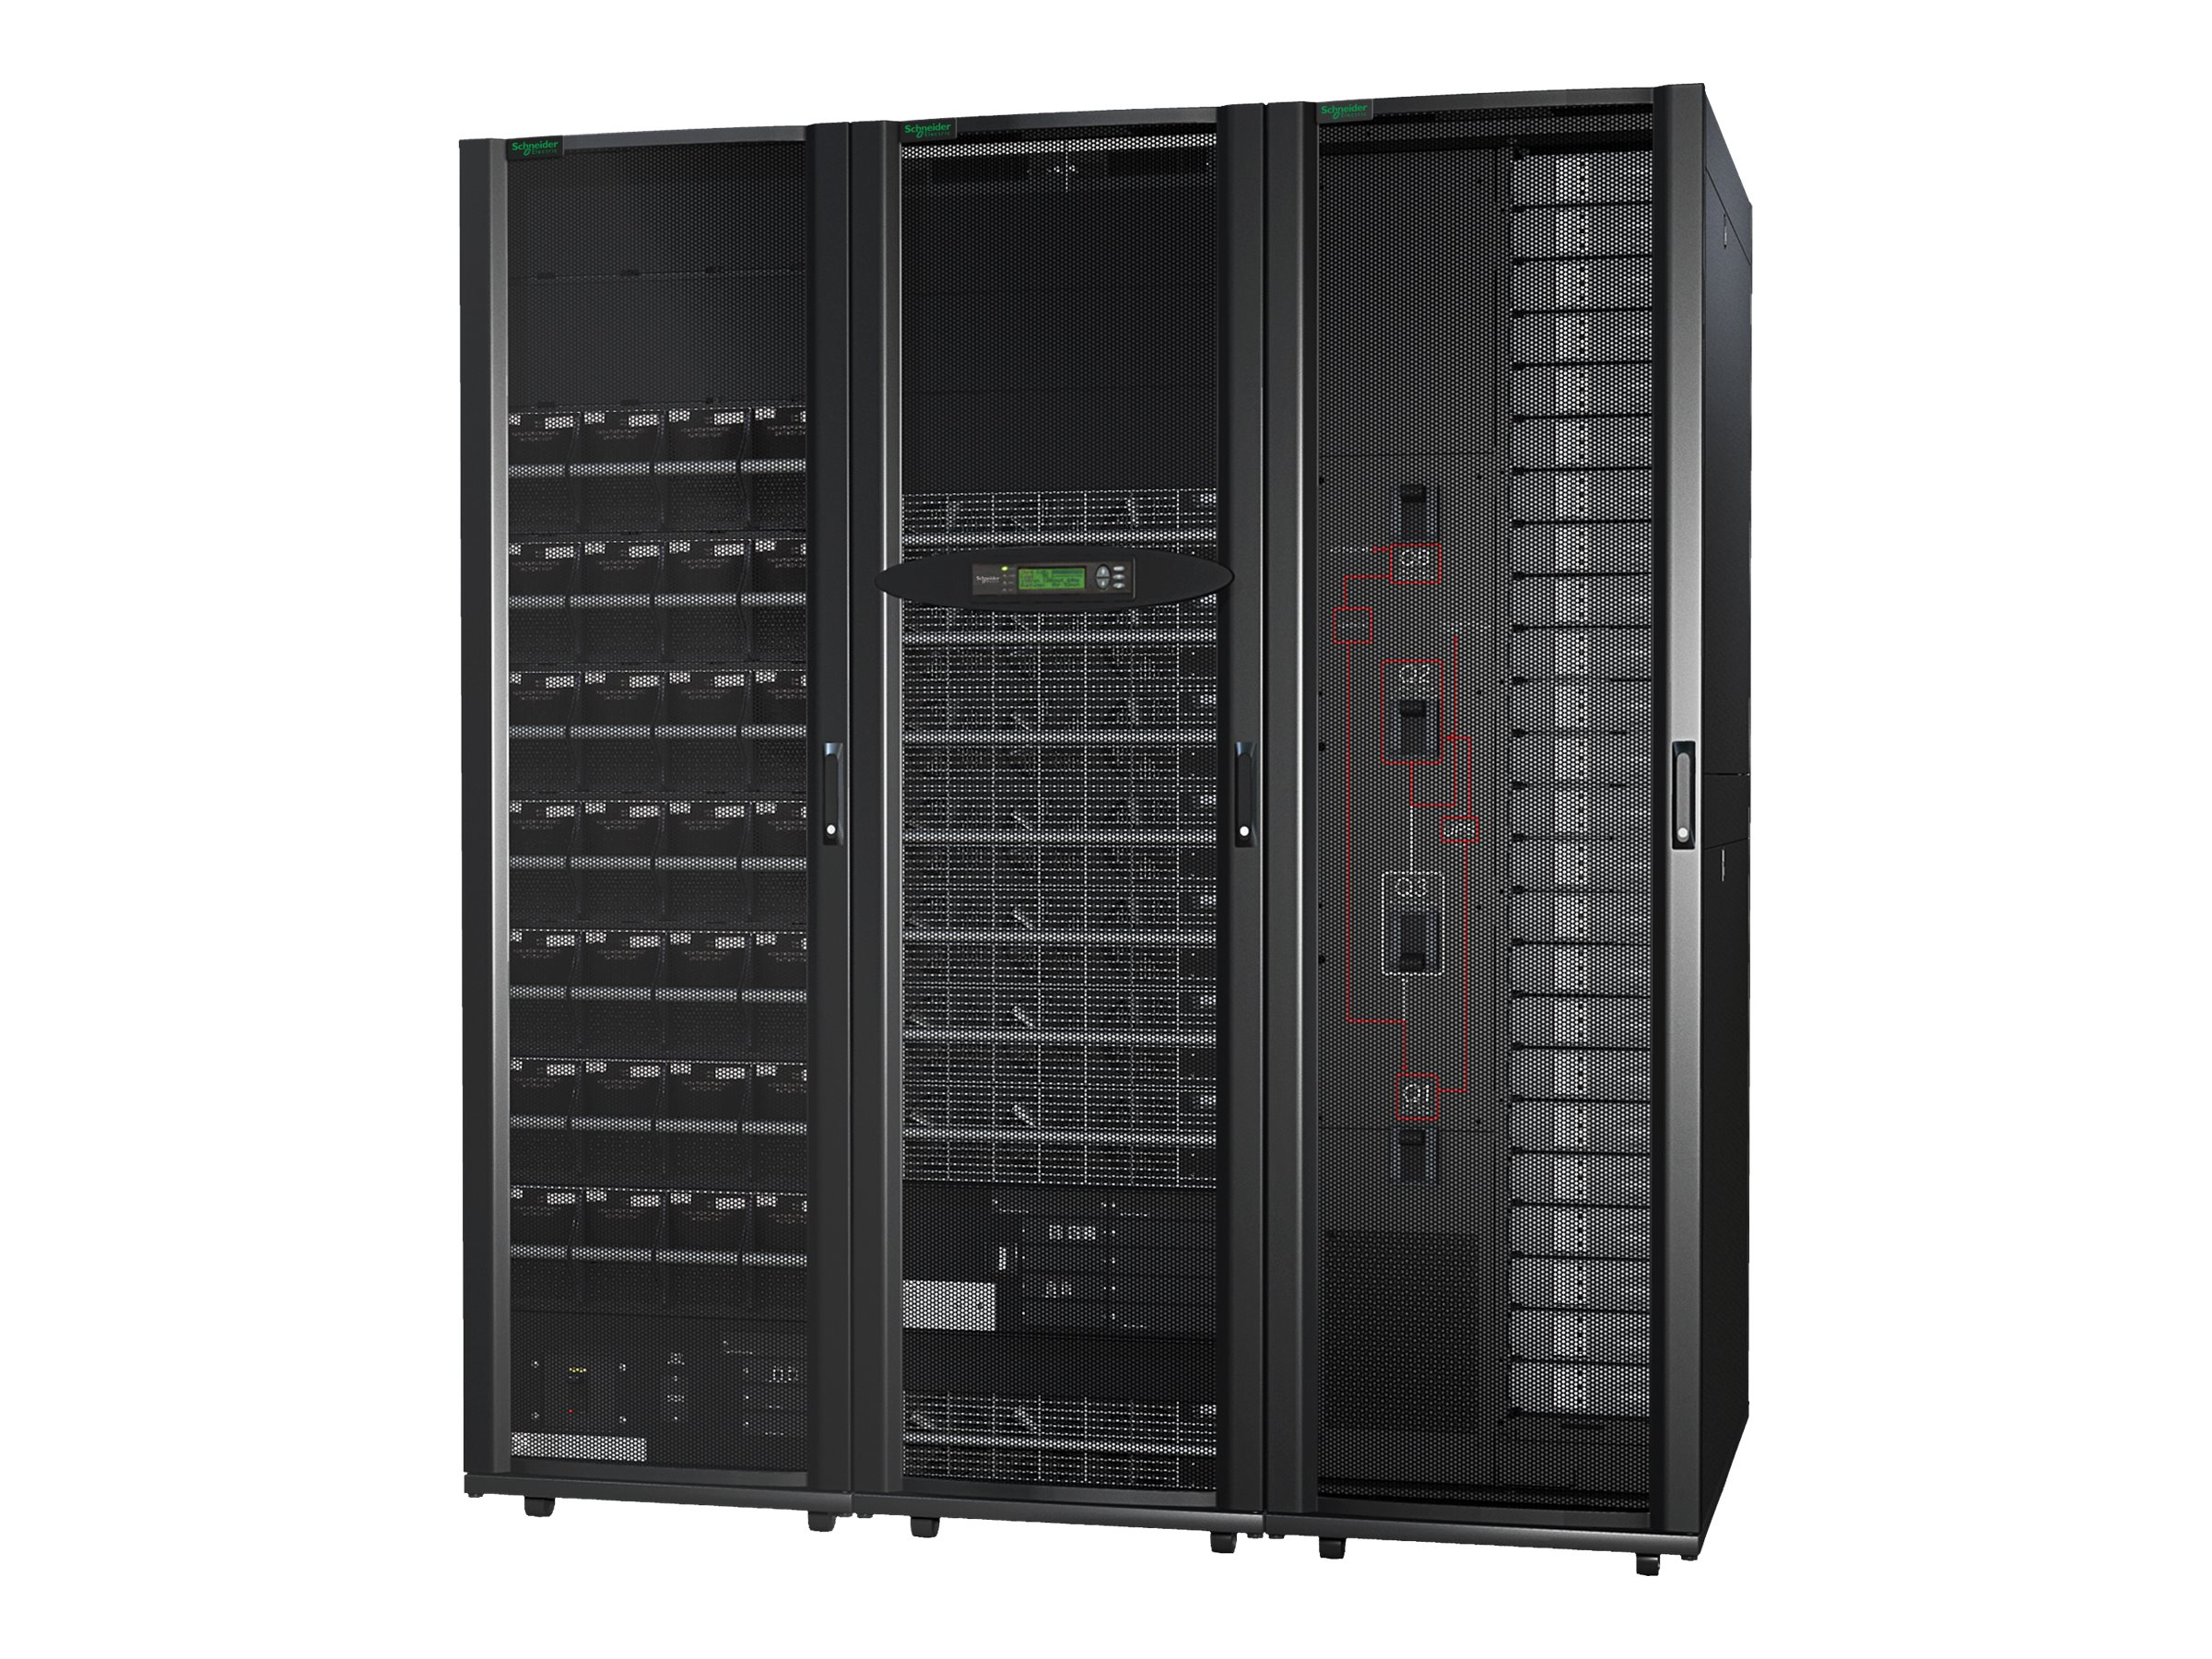 APC Symmetra PX 70kW Scalable to 100kW, 208V 3-phase, Startup, SY70K100F, 13164995, Battery Backup/UPS